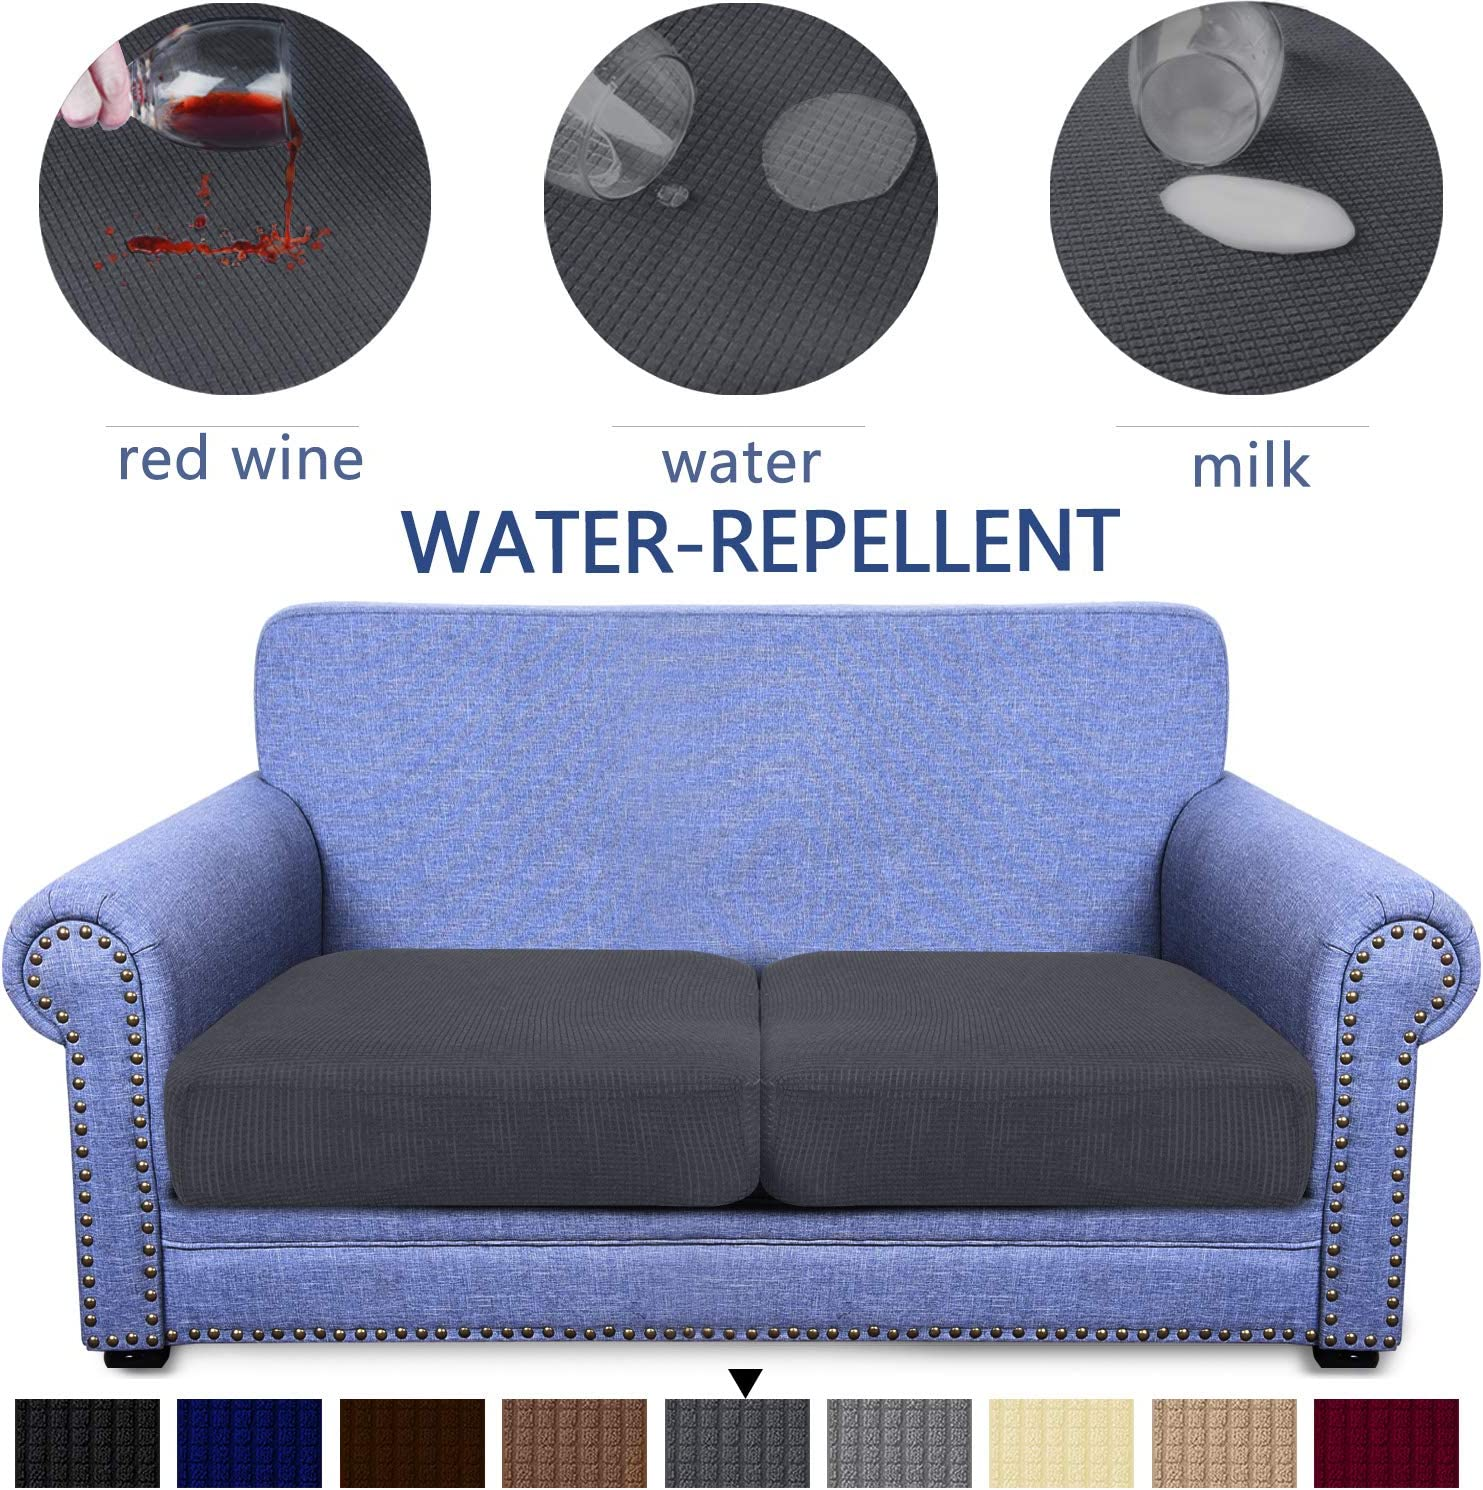 High Stretch Jacquard Fabric Sofa Seat Slipcover Protector Granbest Premium Water-Repellent Couch Seat Cushion Cover Chocolate, 2-Piece loveseat Cushion